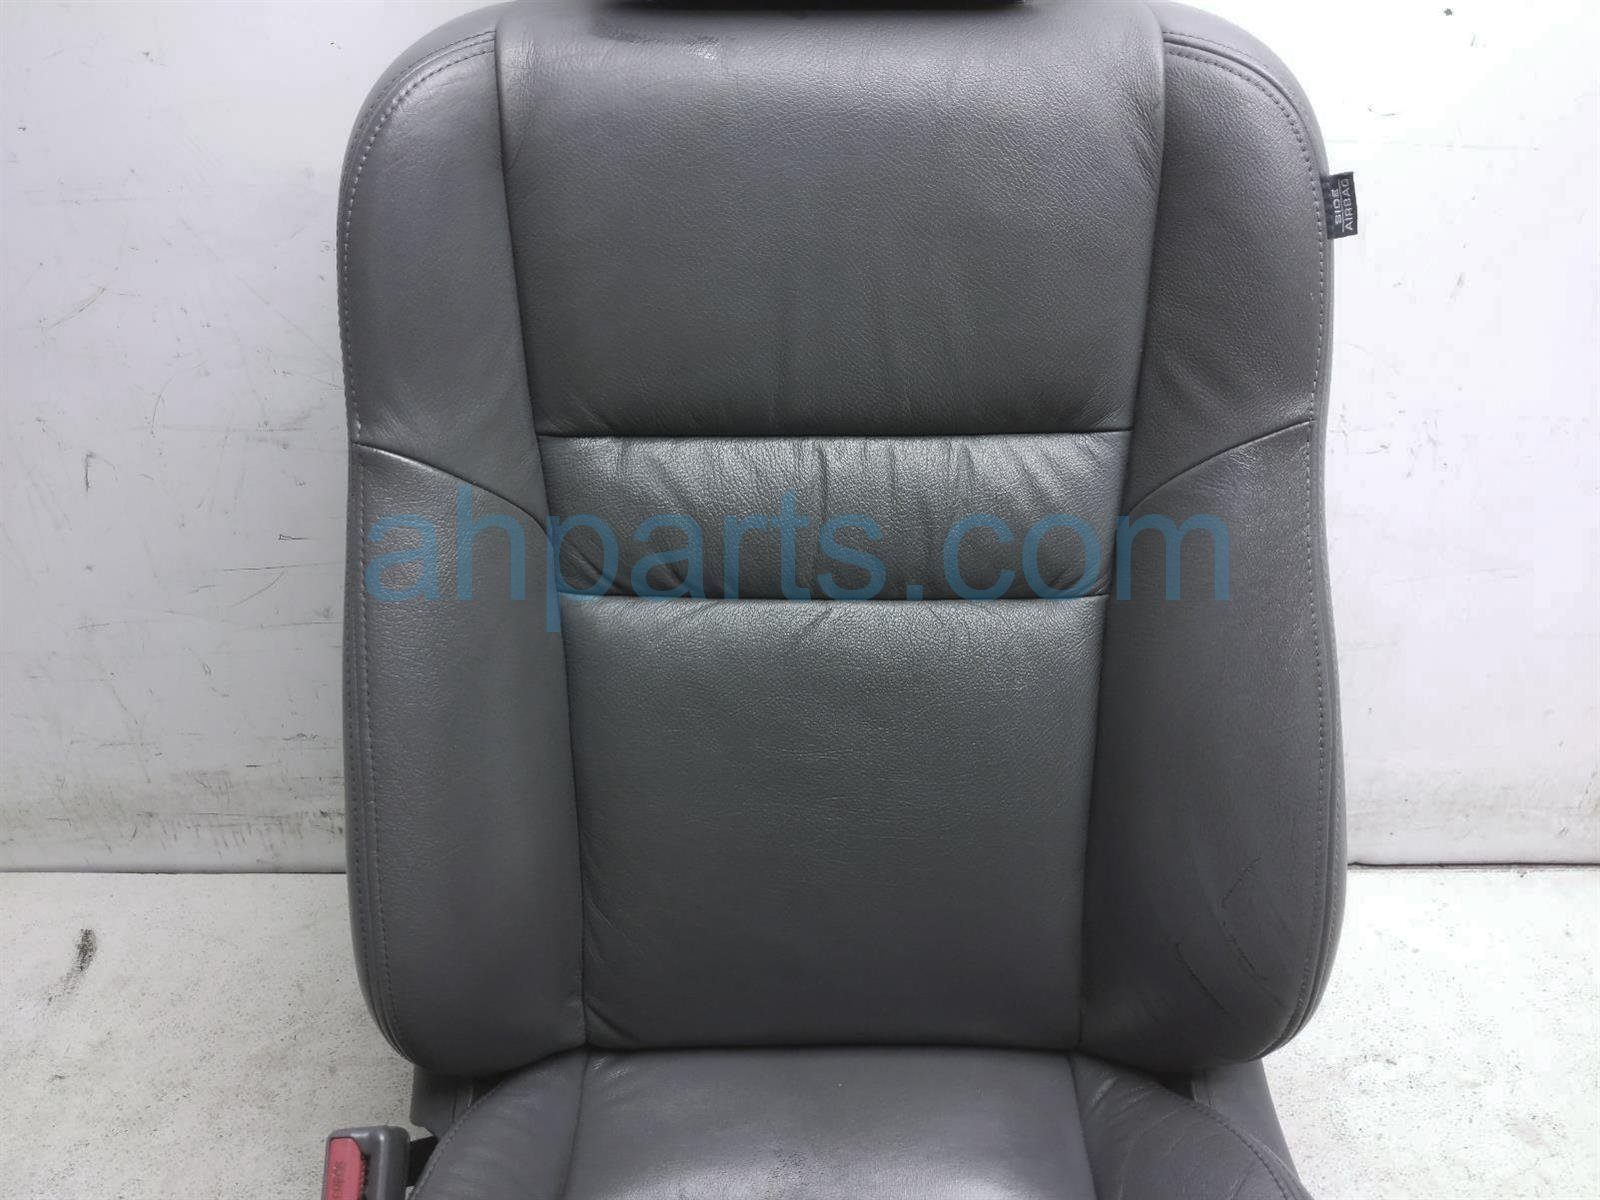 2007 Honda Accord Front Driver Seat   Grey   W/o Airbag 81531 SDB A71ZB Replacement